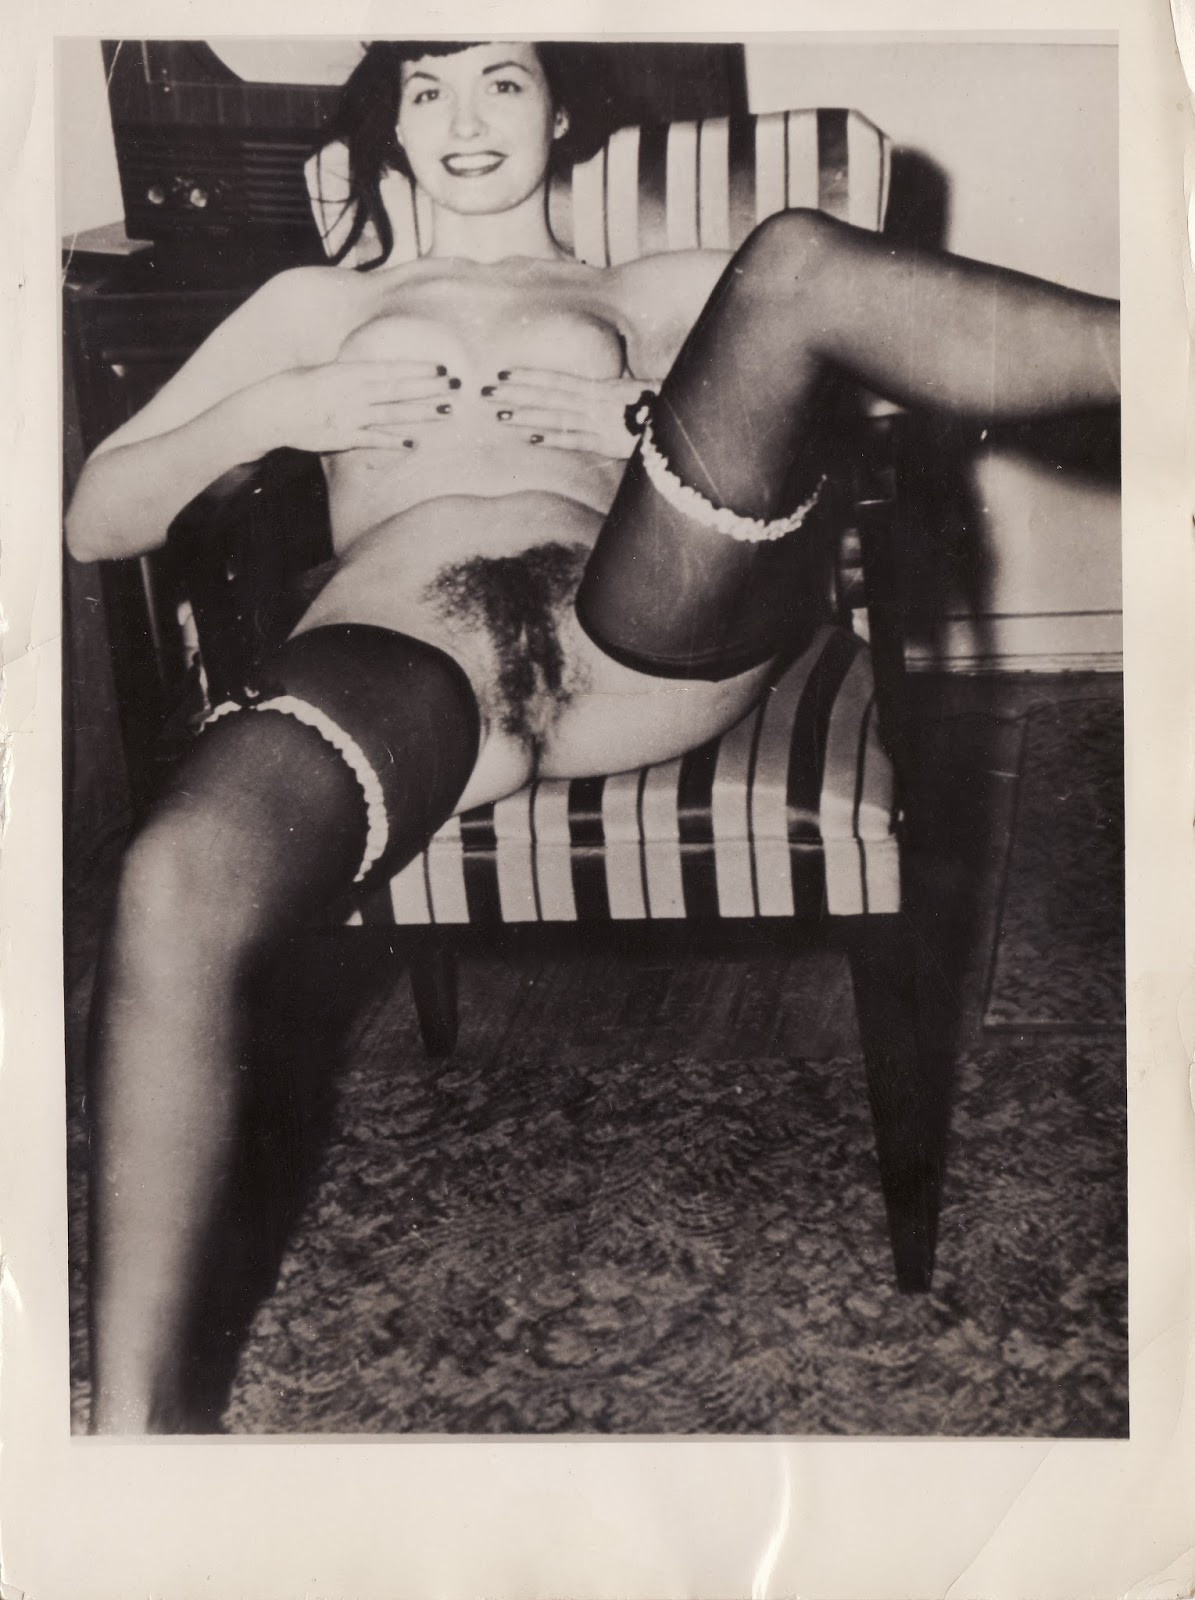 from Ford nude pictures of bettie page